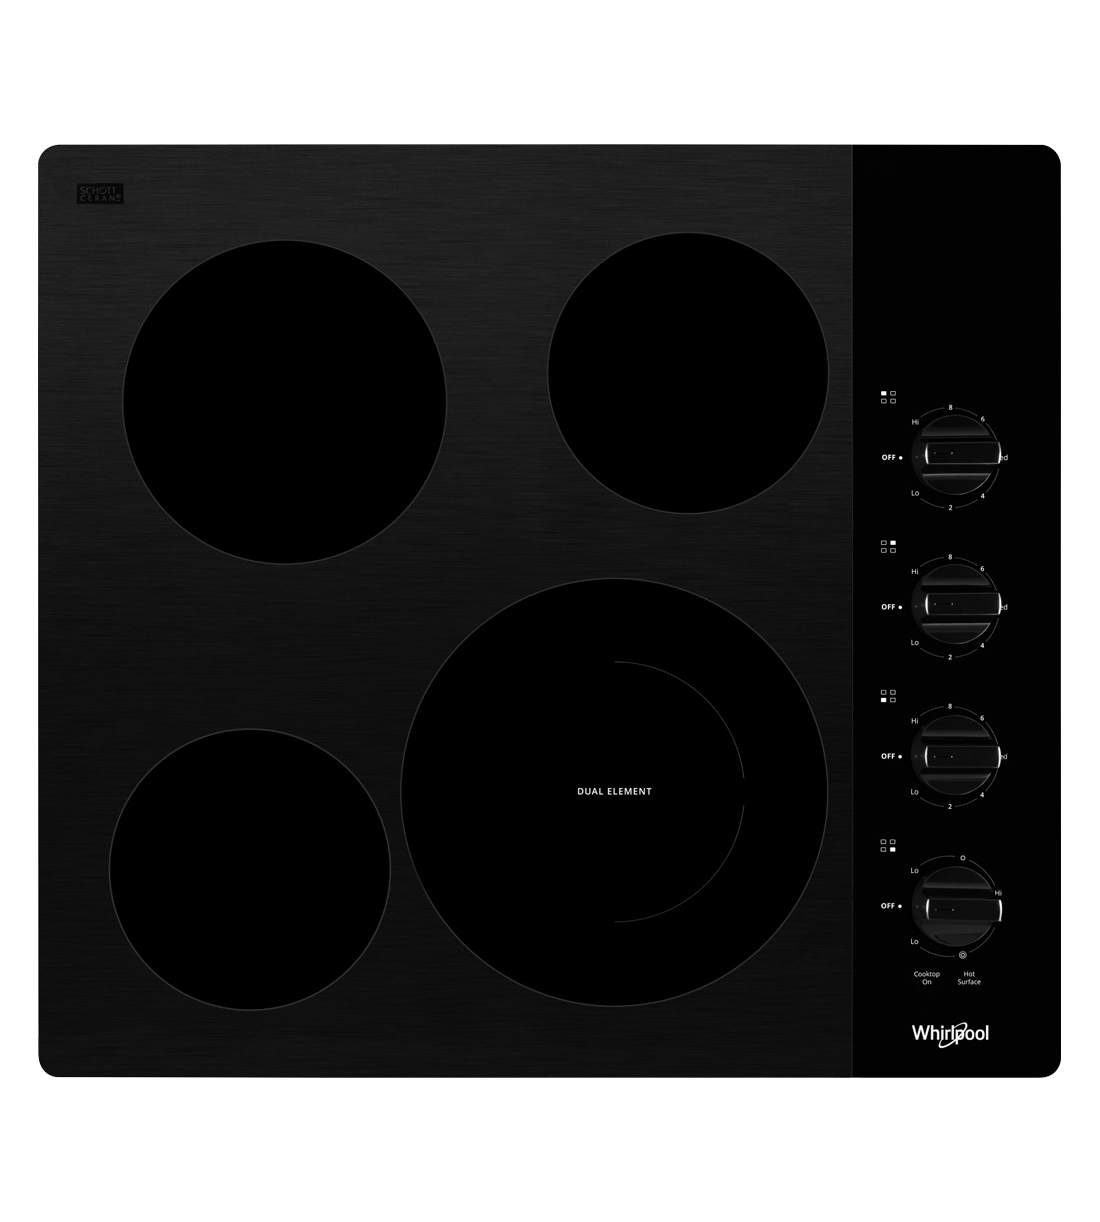 Whirlpool Cooktop in Black color showcased by Corbeil Electro Store